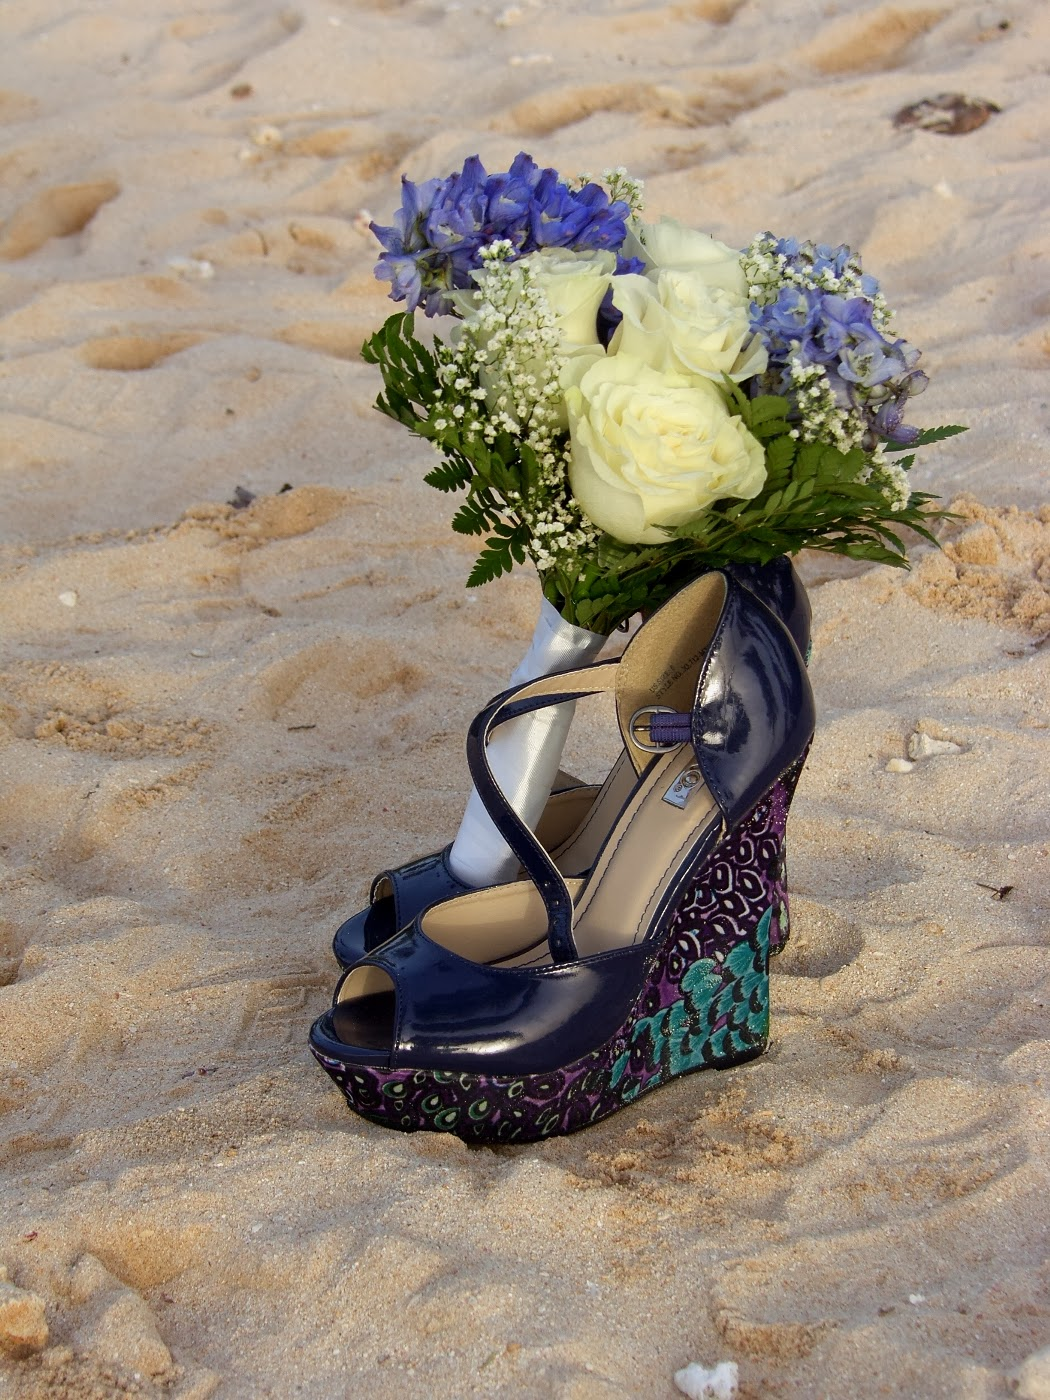 Beach wedding ideas - Wedge wedding shoes